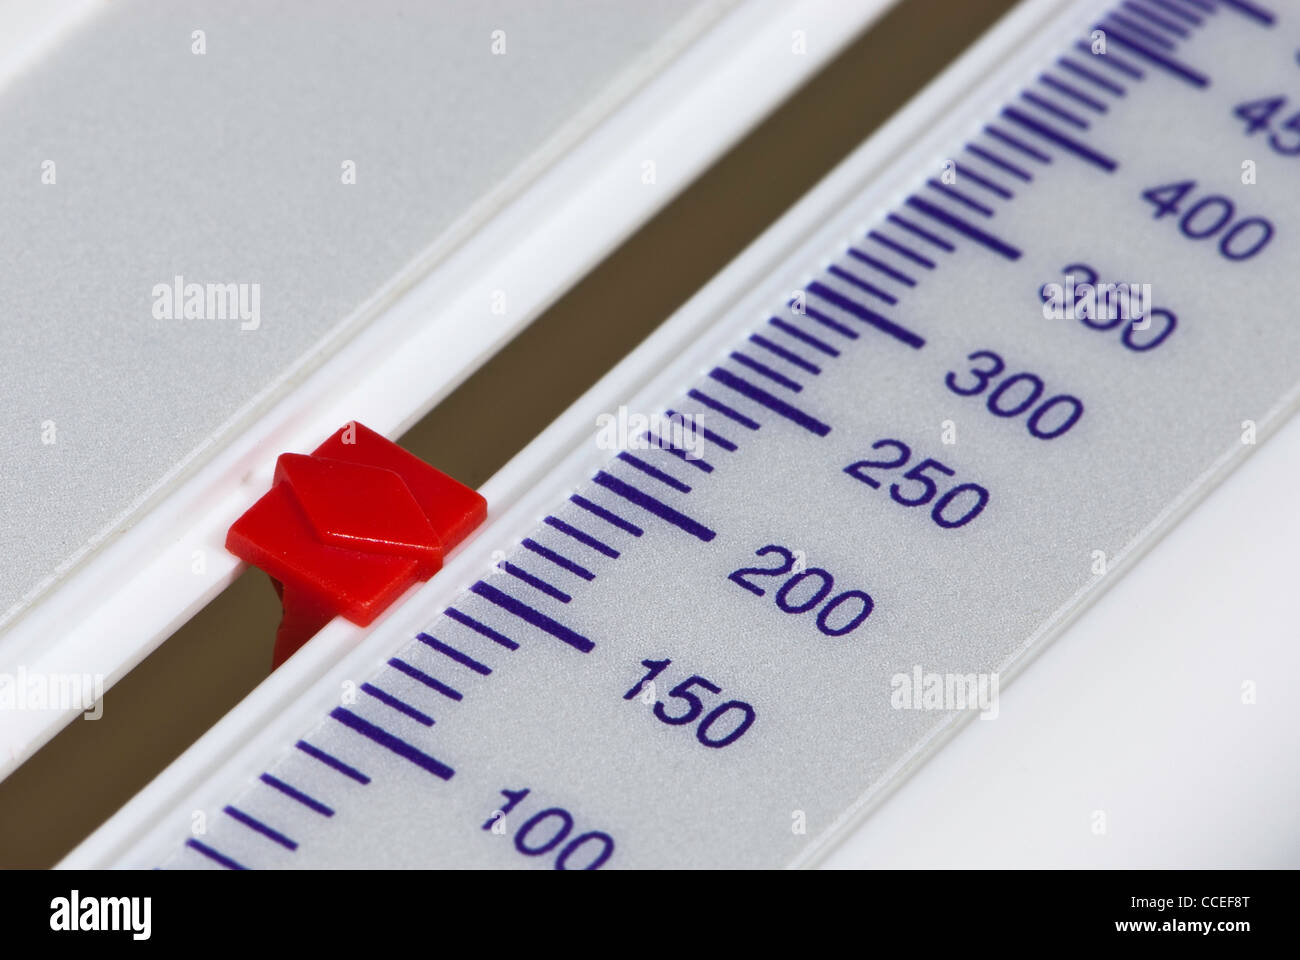 Close up of scale on a Peak flow meter at 150. - Stock Image